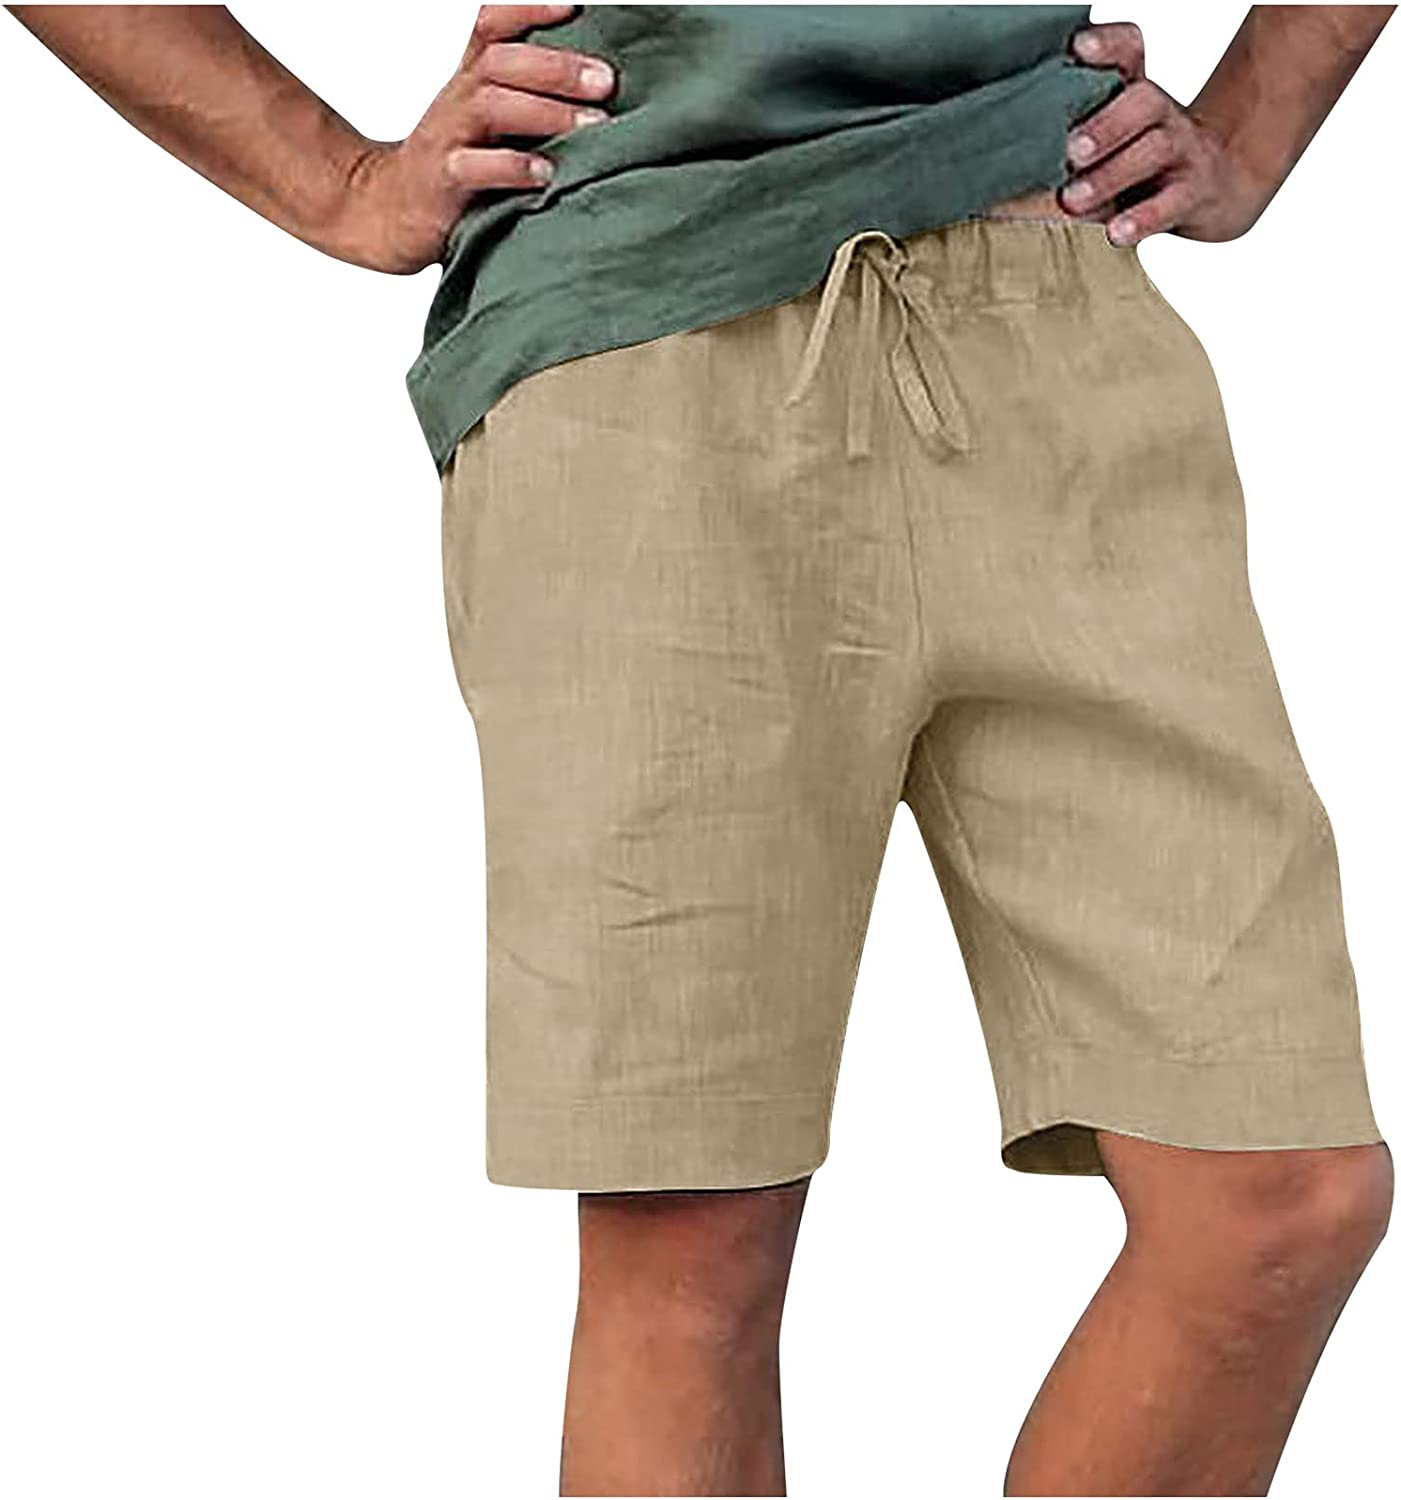 Raeneomay Men's Shorts Casual Relaxed Fit with Pockets Drawstring Lightweight Summer Beach Athletic Shorts